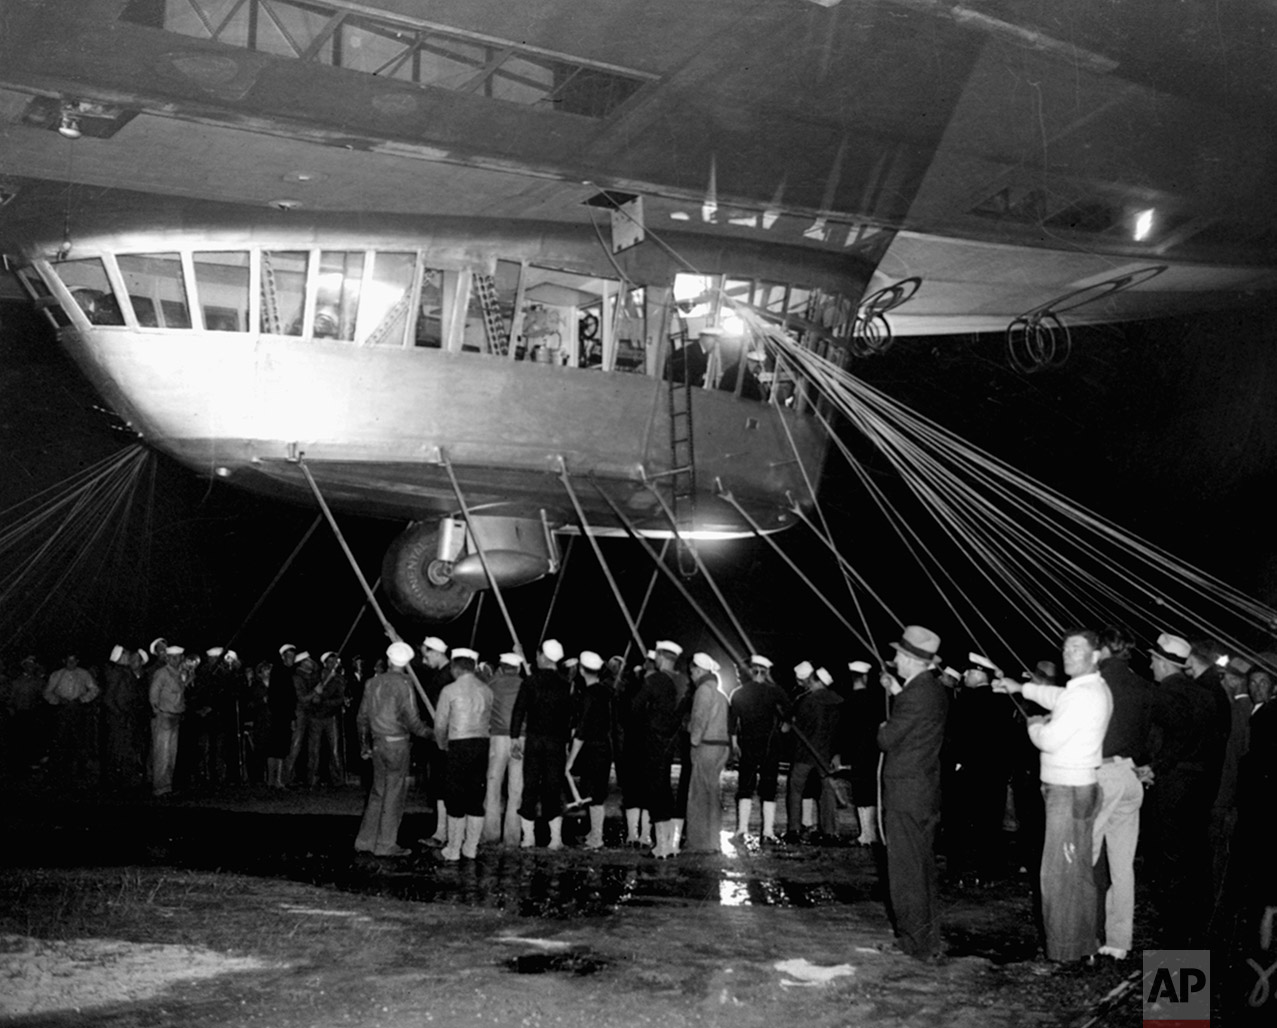 Spectators and ground crew surround the gondola of the German zeppelin Hindenburg as the lighter-than-air ship prepared to depart the U.S. Naval Station at Lakehurst, NJ, May 11, 1935, on its return trip to Germany. (AP Photo)